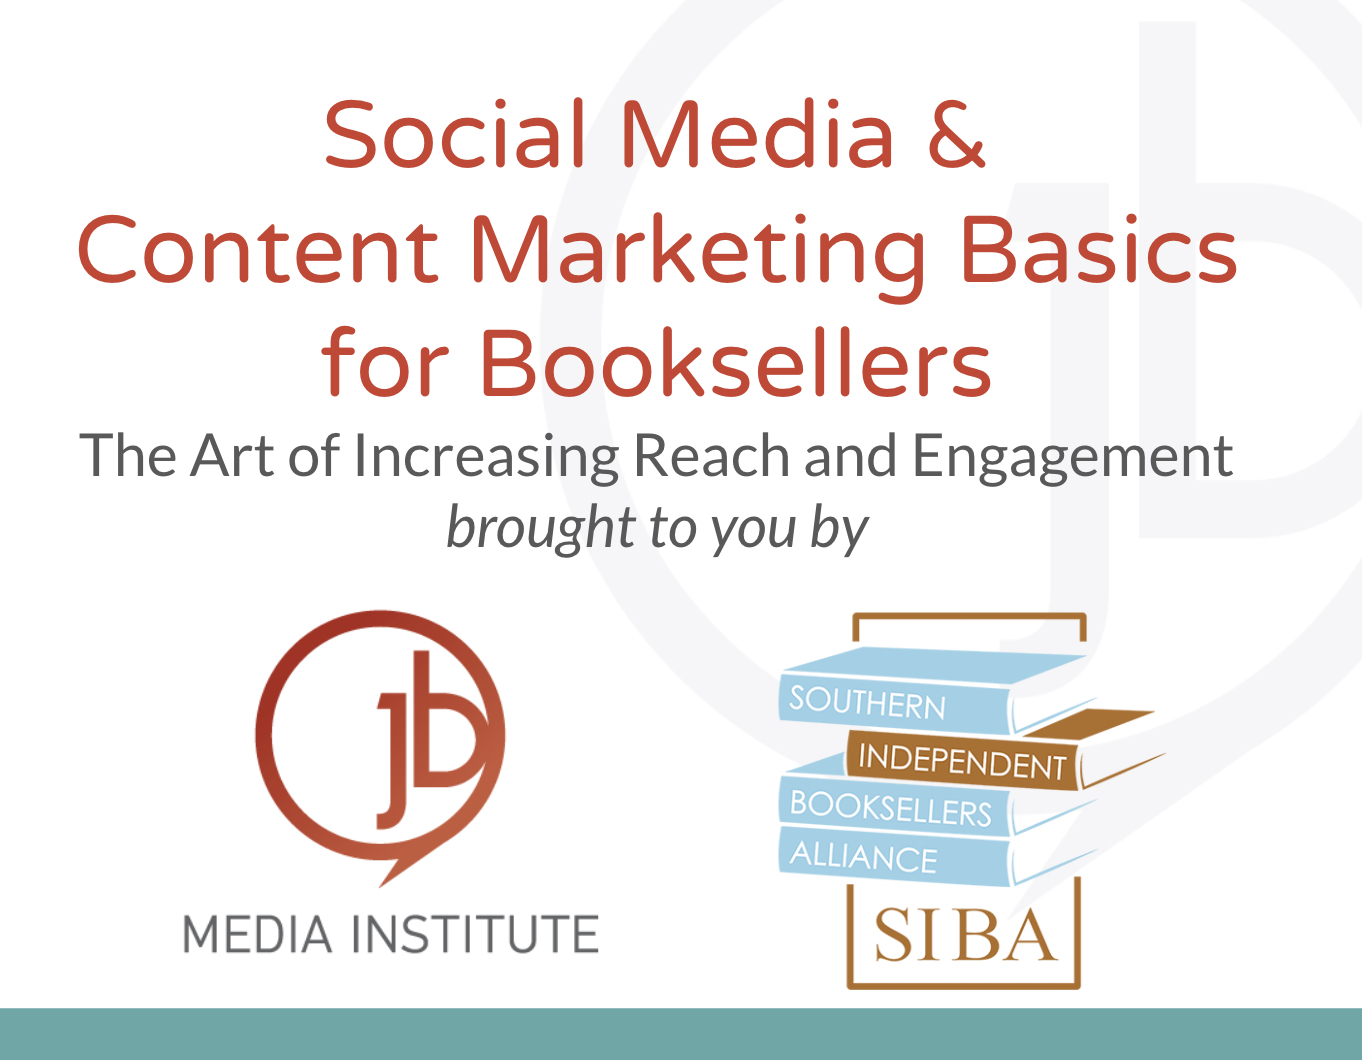 Social Media and Content Marketing Basics for Booksellers